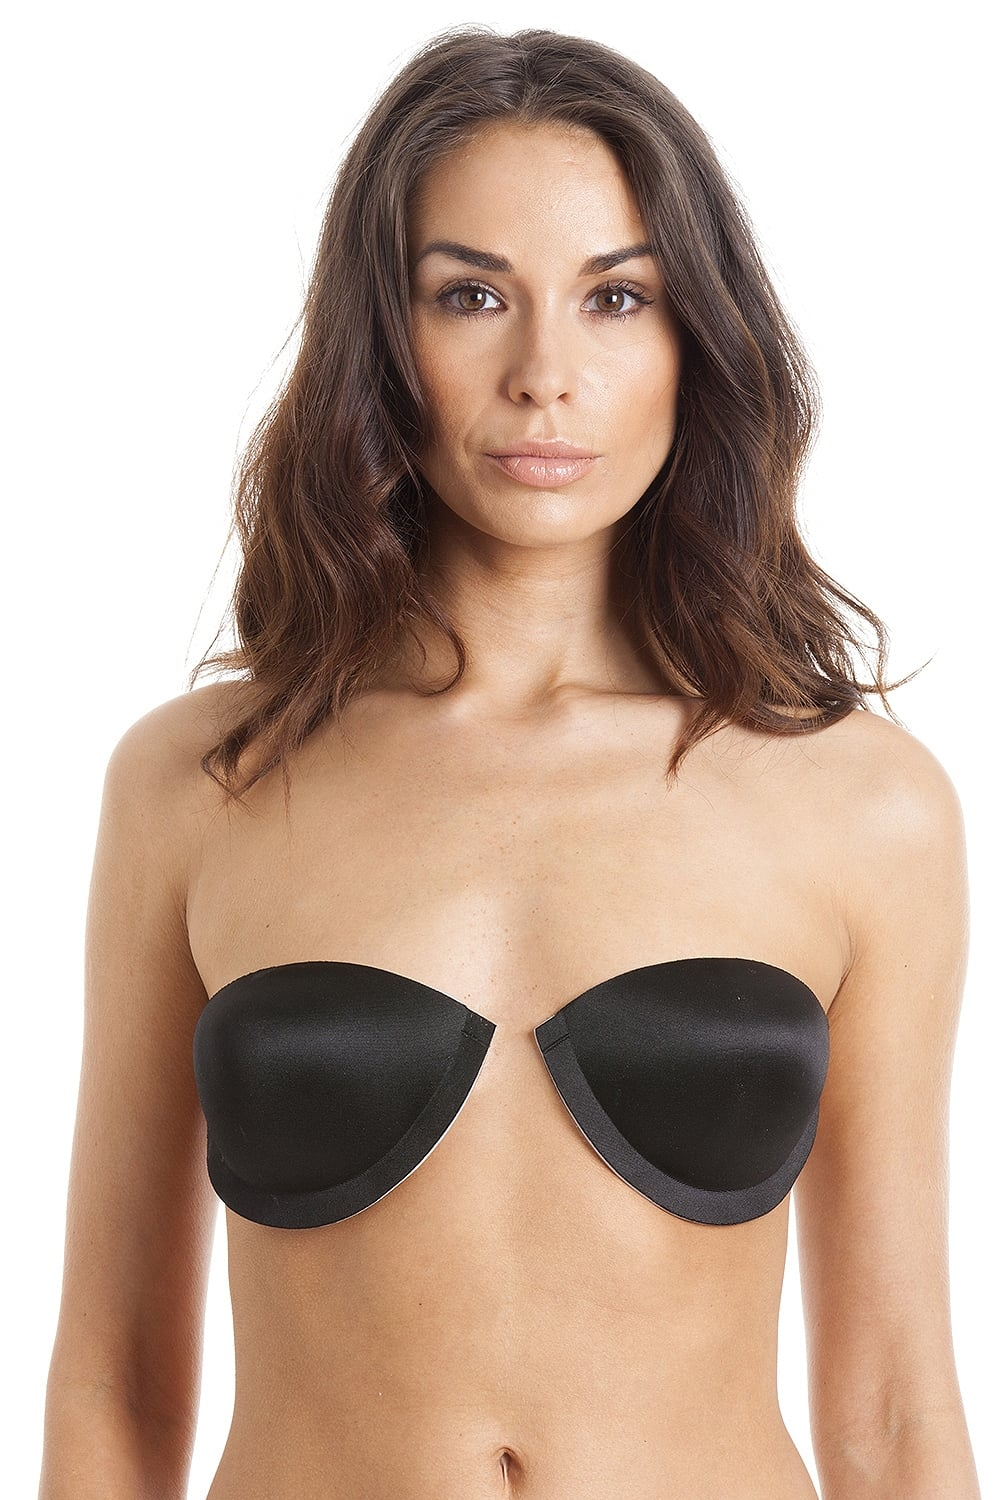 79c3fdbabad87 By Wishes Womens Black Self Adhesive Staykup Bra